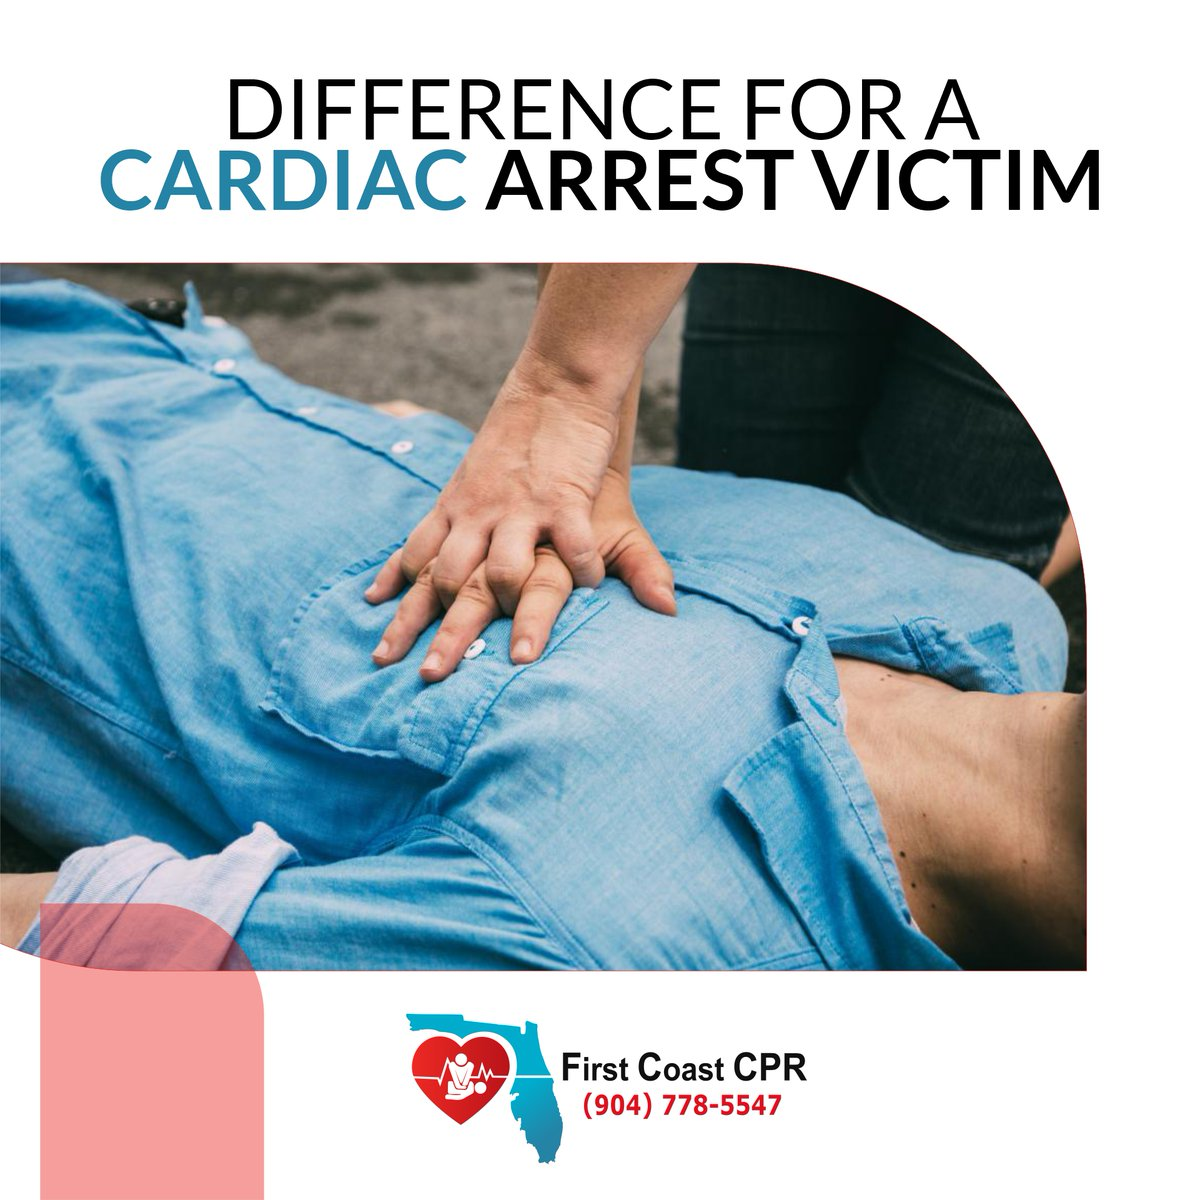 Becoming CPR-certified can make an immediate difference for a cardiac arrest victim and his or her family. -- http://firstcoastcpr.com  #firstcoastcpr #cpr #firstaid #firstaidtraining #herotrainingcenter #BLS #AED #AHA #cprcetification #trainingcenter #nurse #nursing #nurselifepic.twitter.com/M9FSd9YN0X